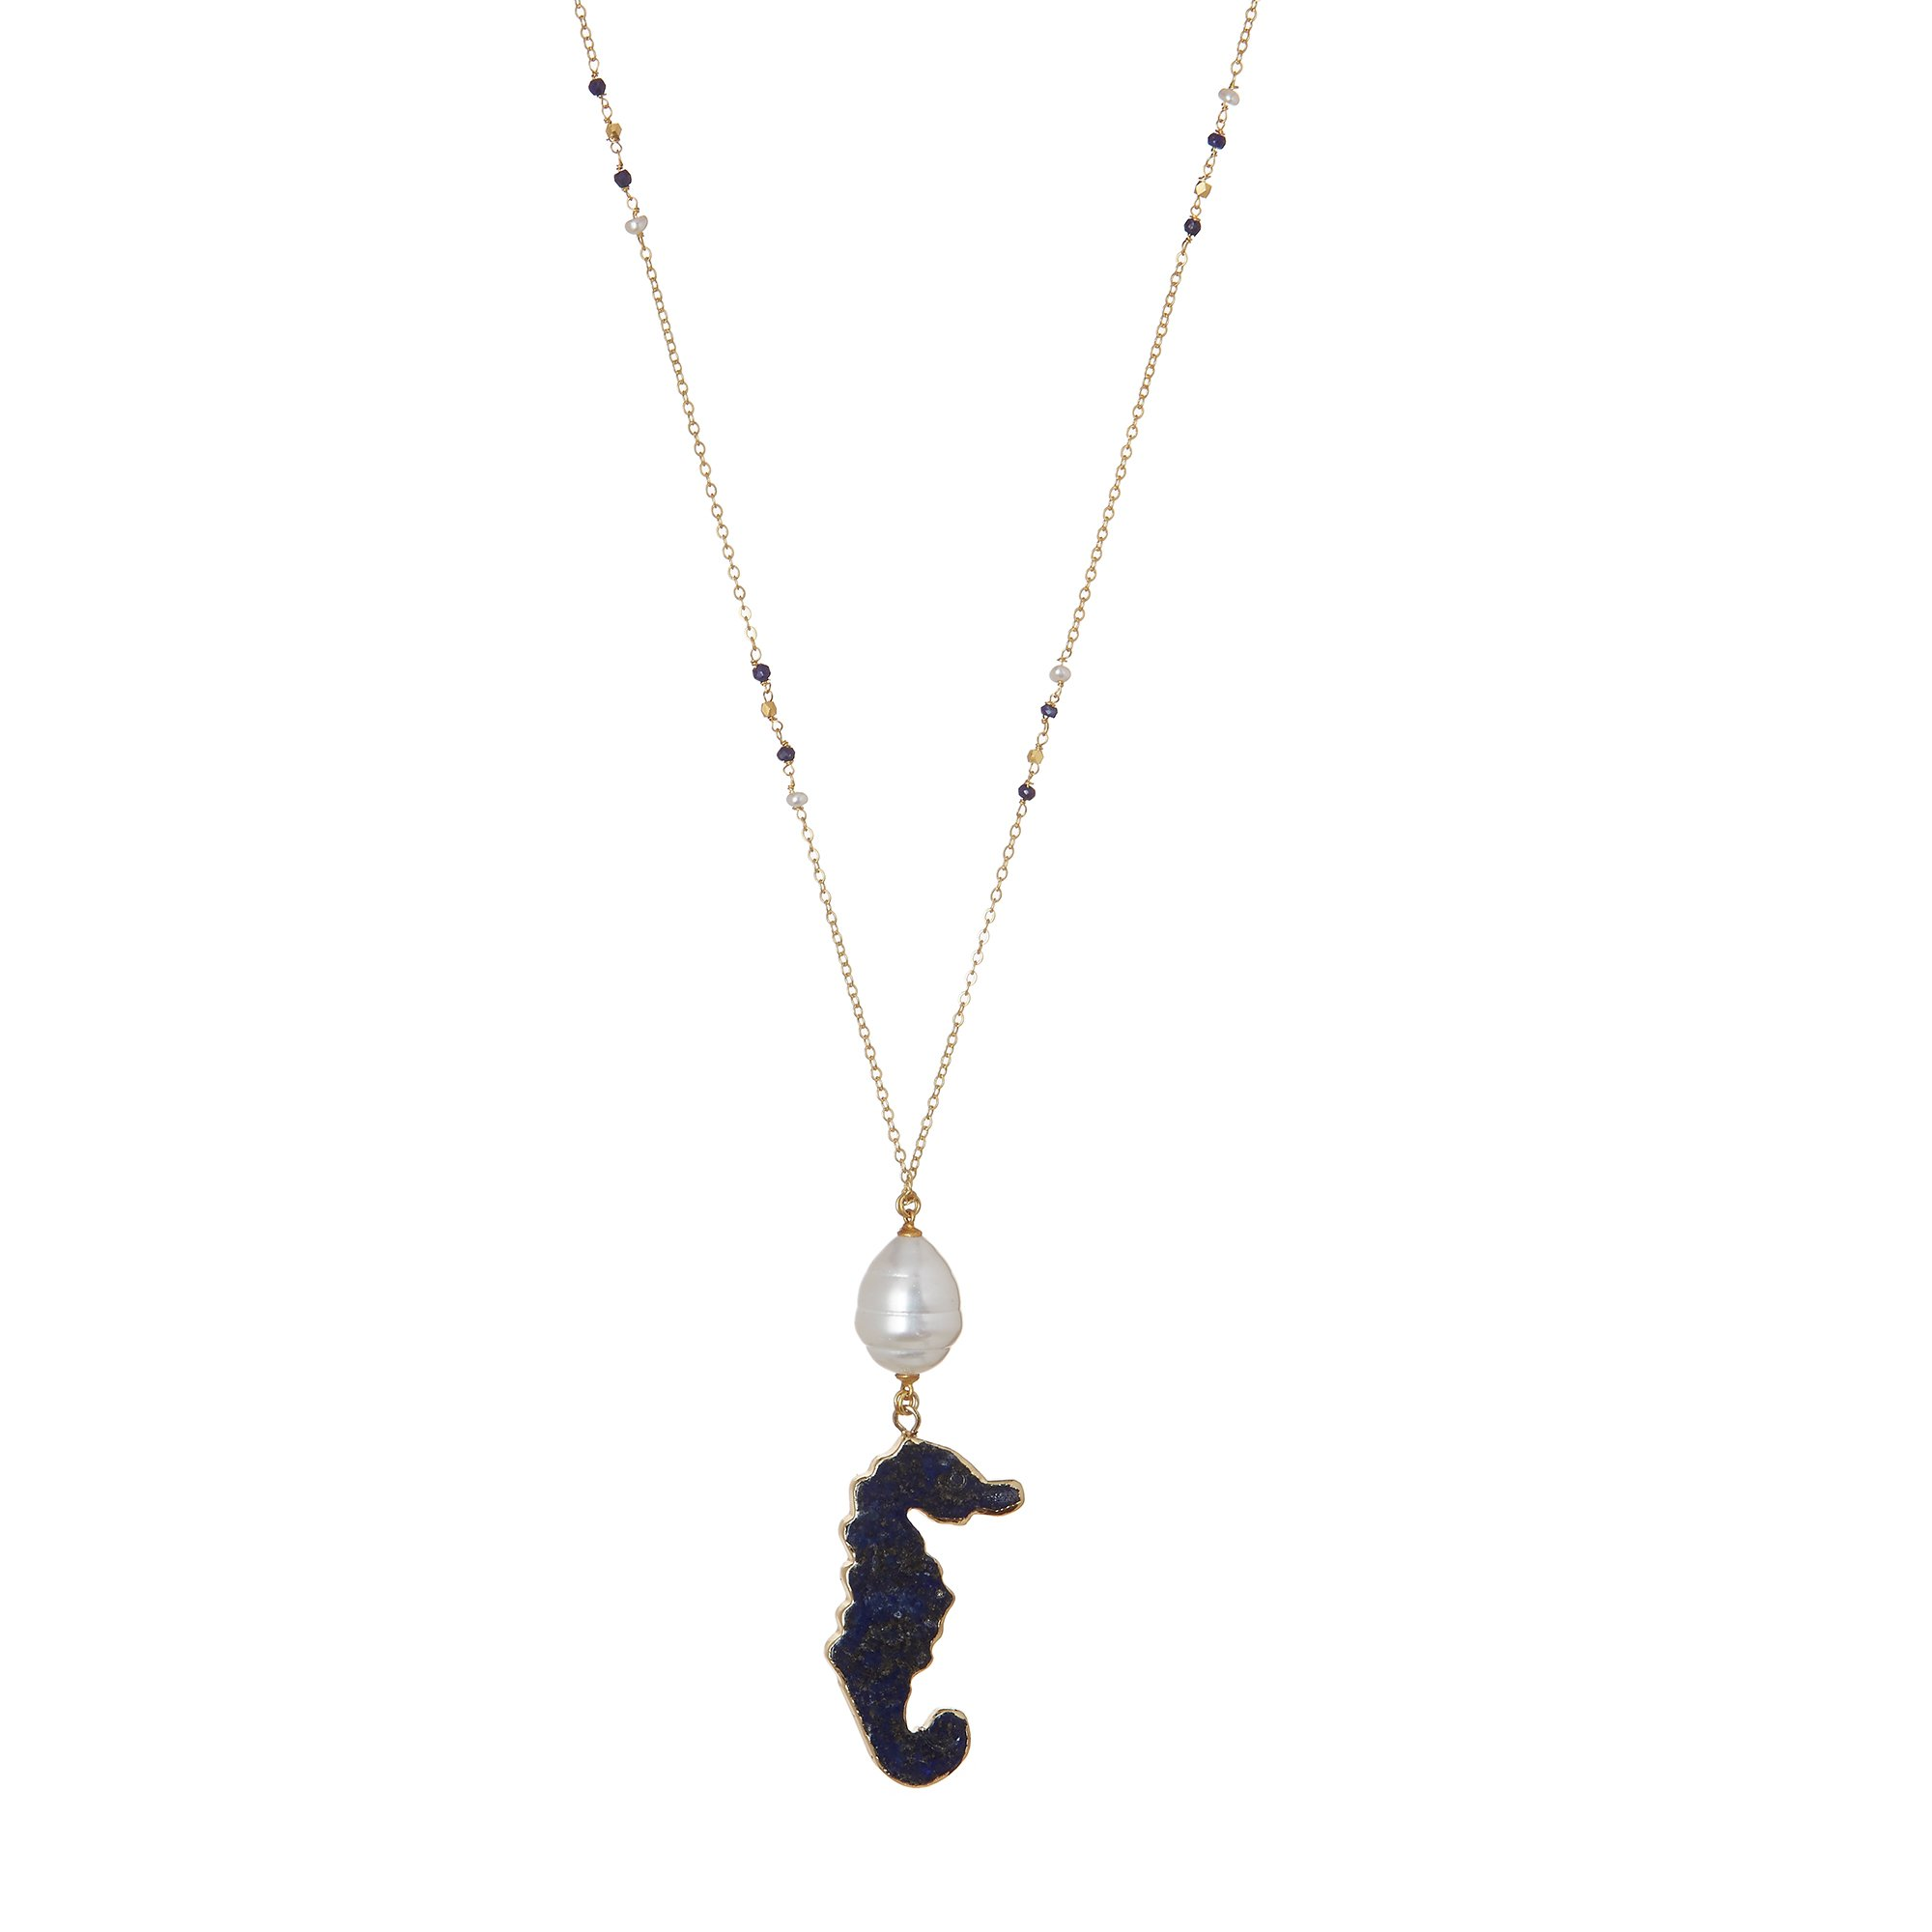 crystal link tier graceful chain delicate swarovski beau necklace jewelry simple clara seahorse